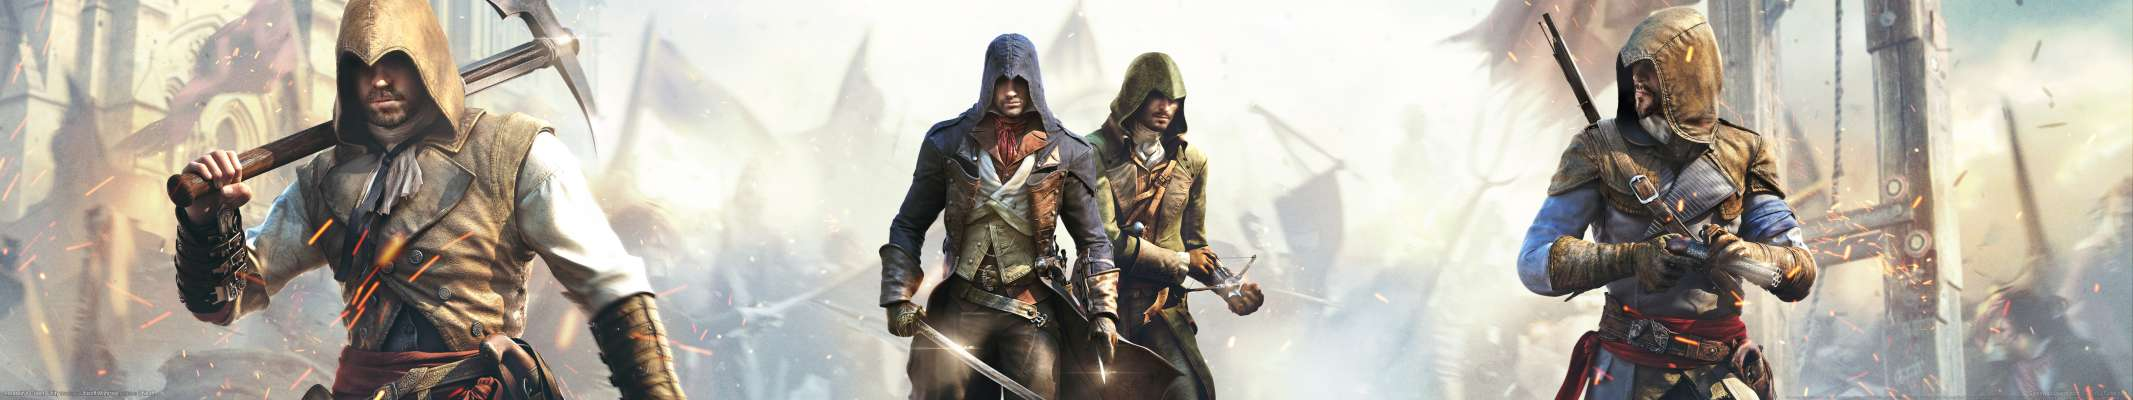 Assassin's Creed: Unity triple screen fondo de escritorio